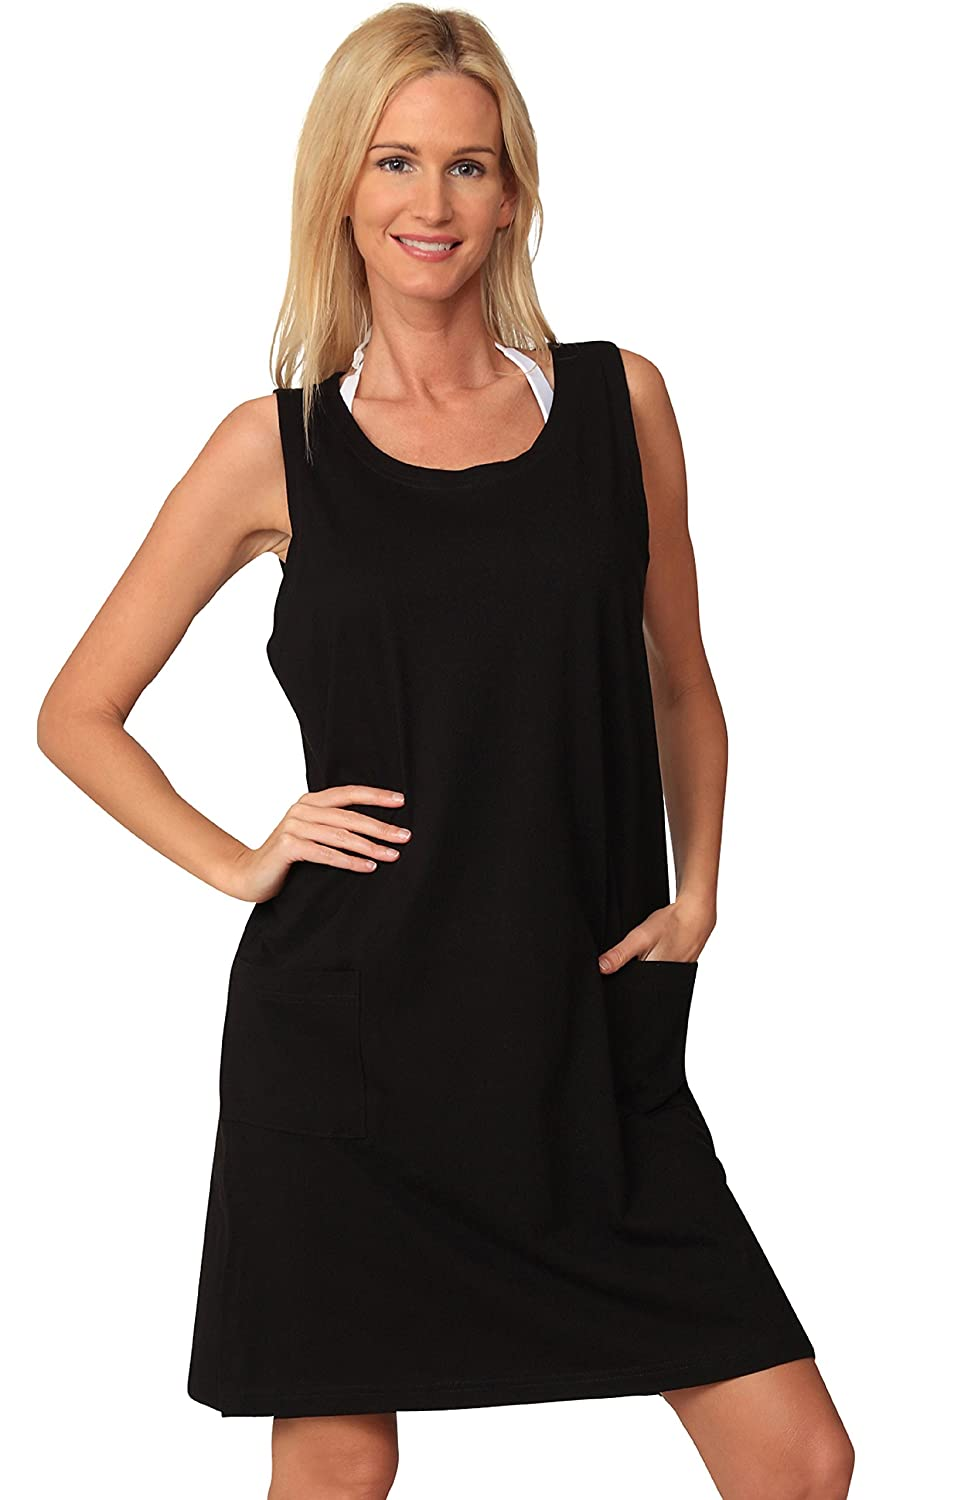 b3139624f6 Ingear Cotton Dress Beach Casual Tank Summer Fashion White Cover Up Plus  Size: Amazon.ca: Clothing & Accessories